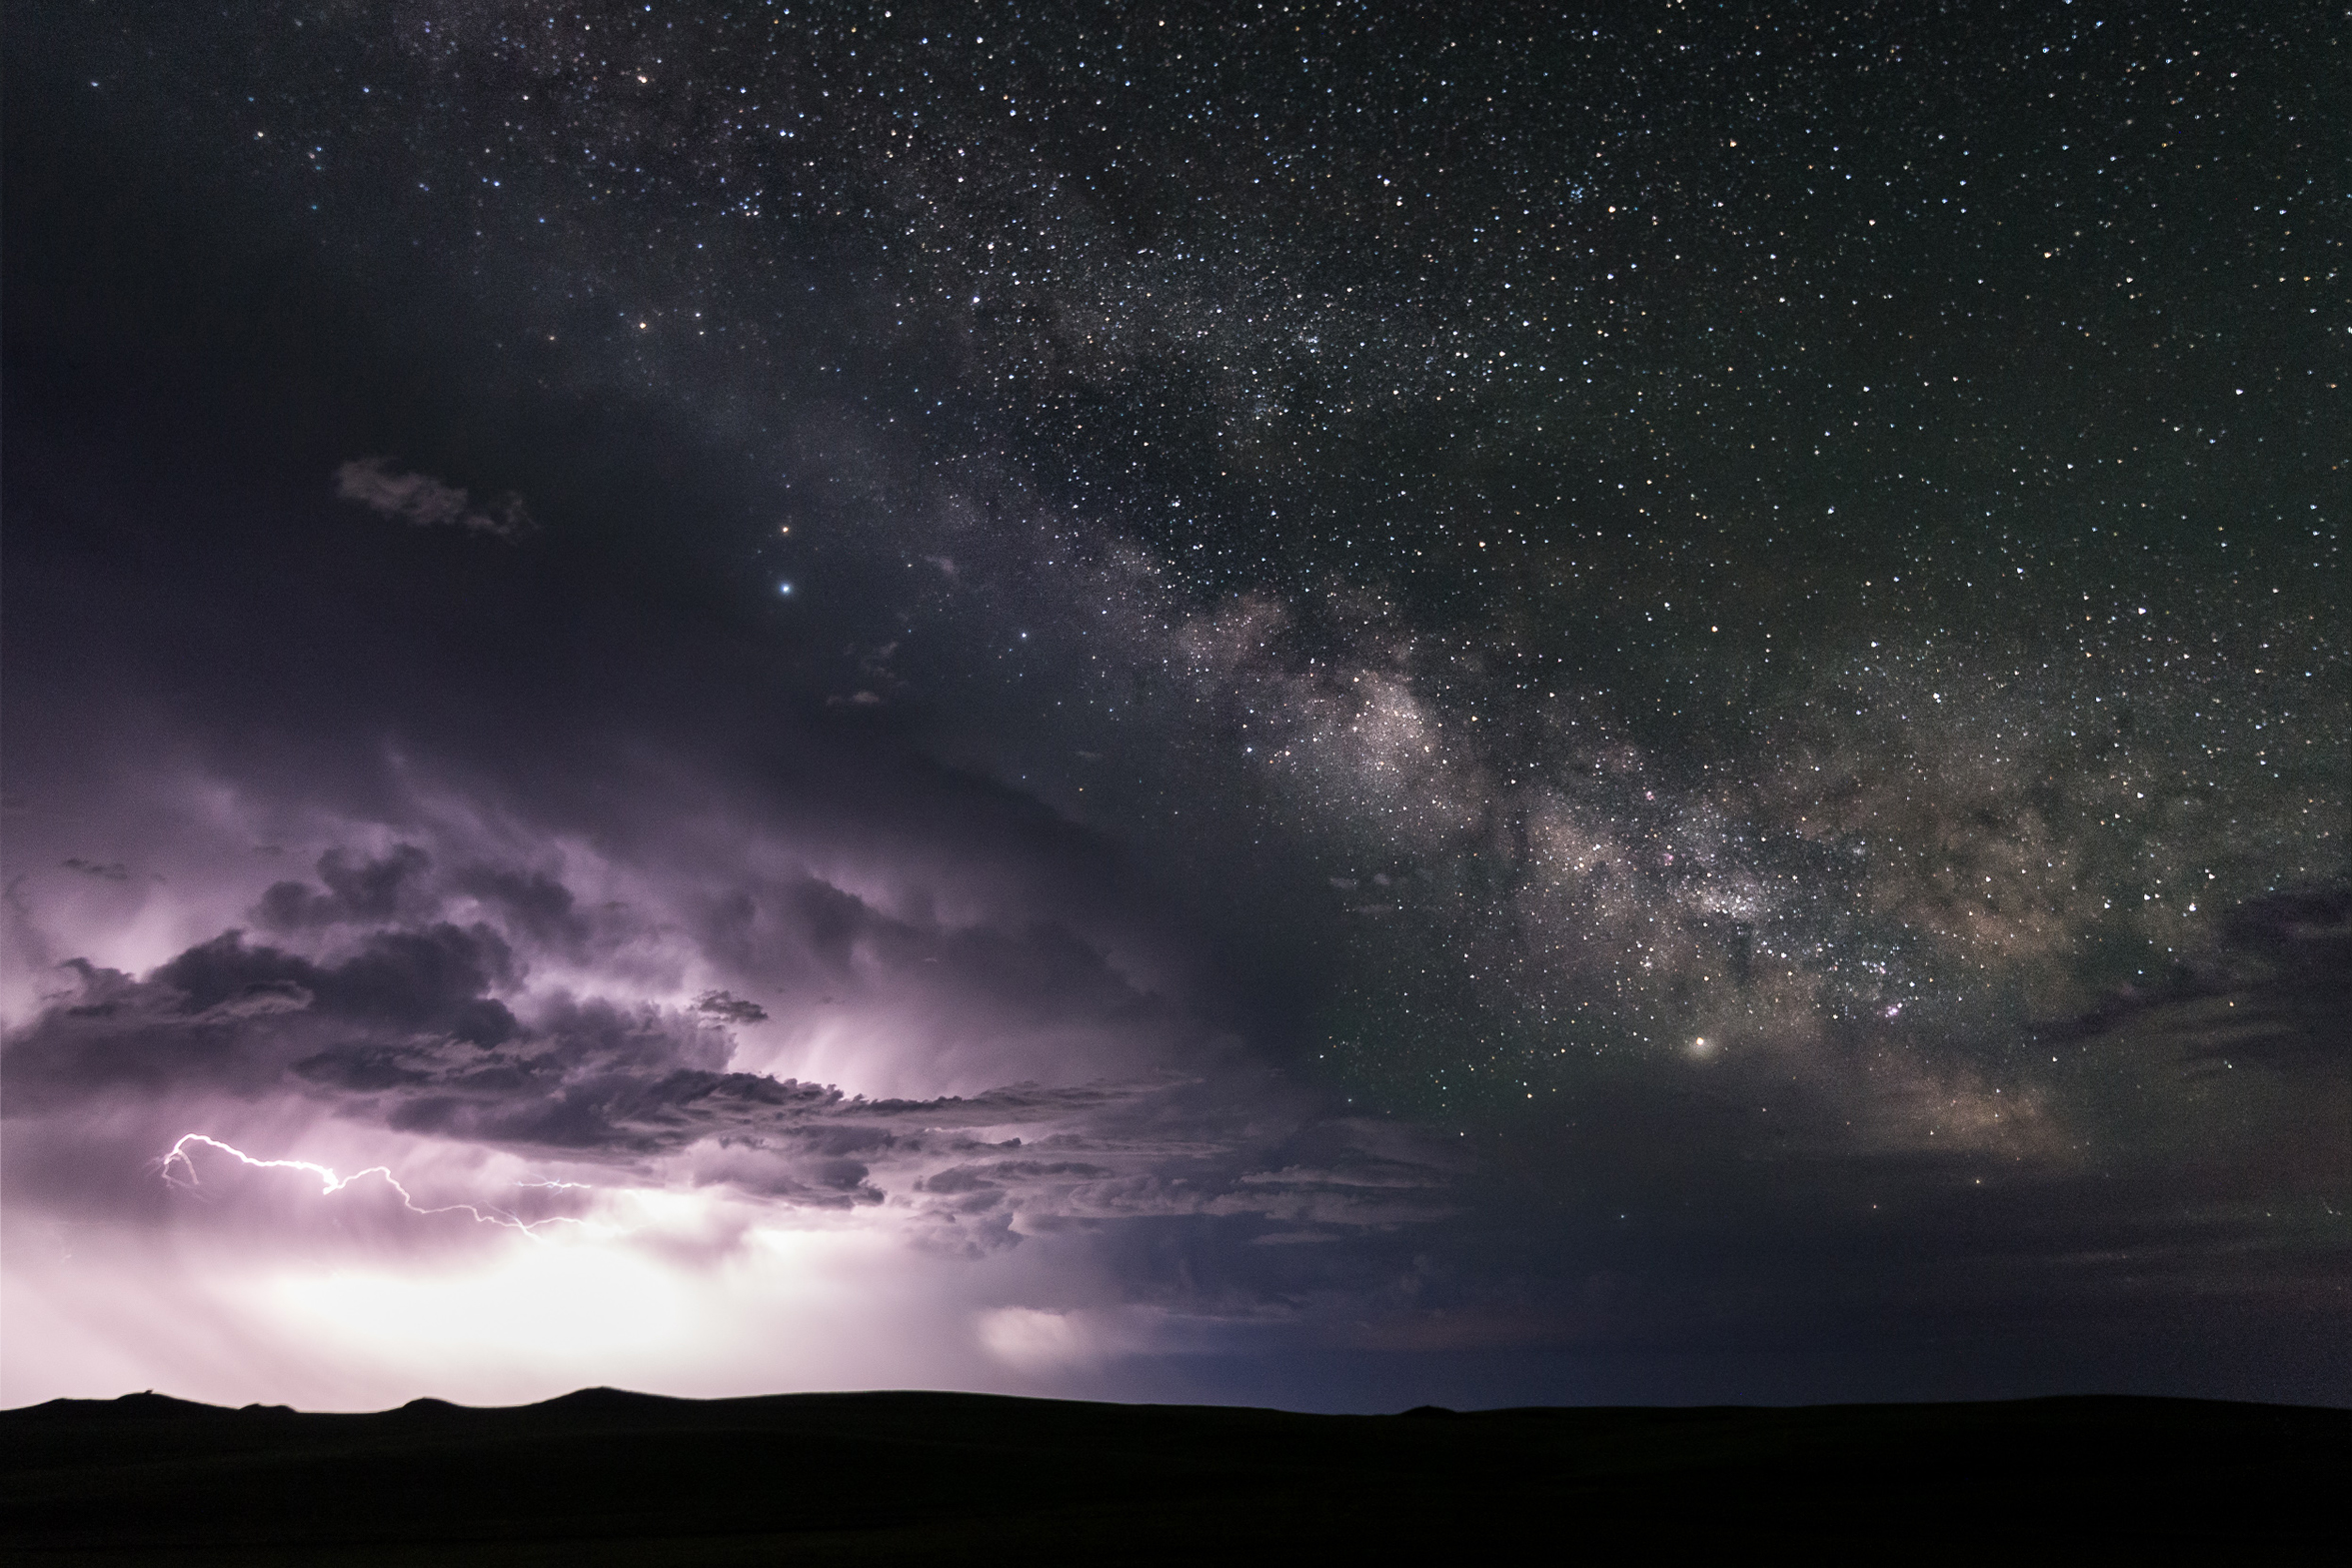 The Milky Was rises above a departing thunderstorm in Eastern Montana on June 4, 2018.